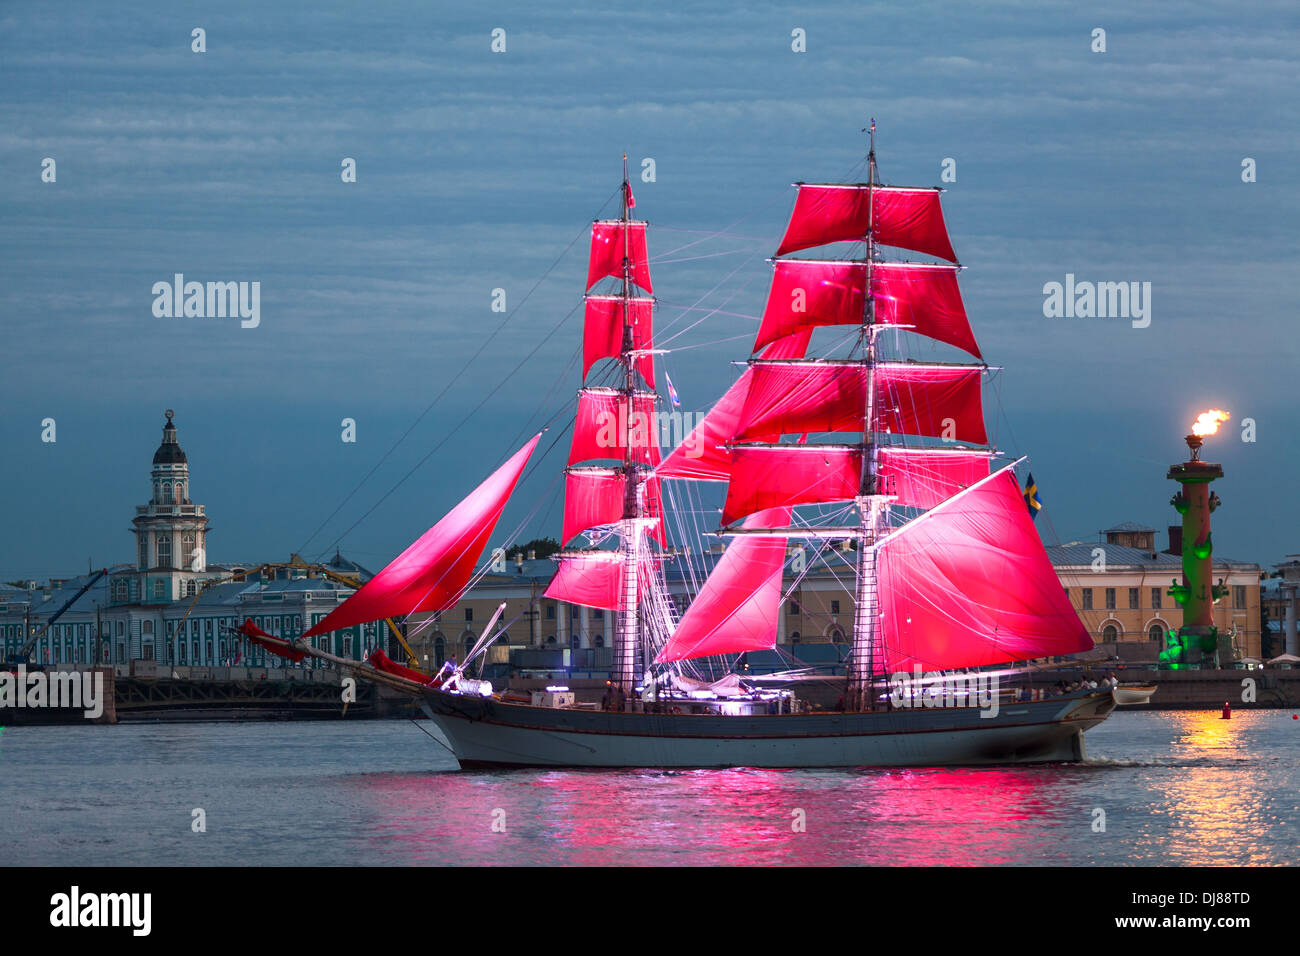 Celebration Scarlet Sails show during the White Nights Festival, St. Petersburg, Russia. Rostral Columns with fire - Stock Image